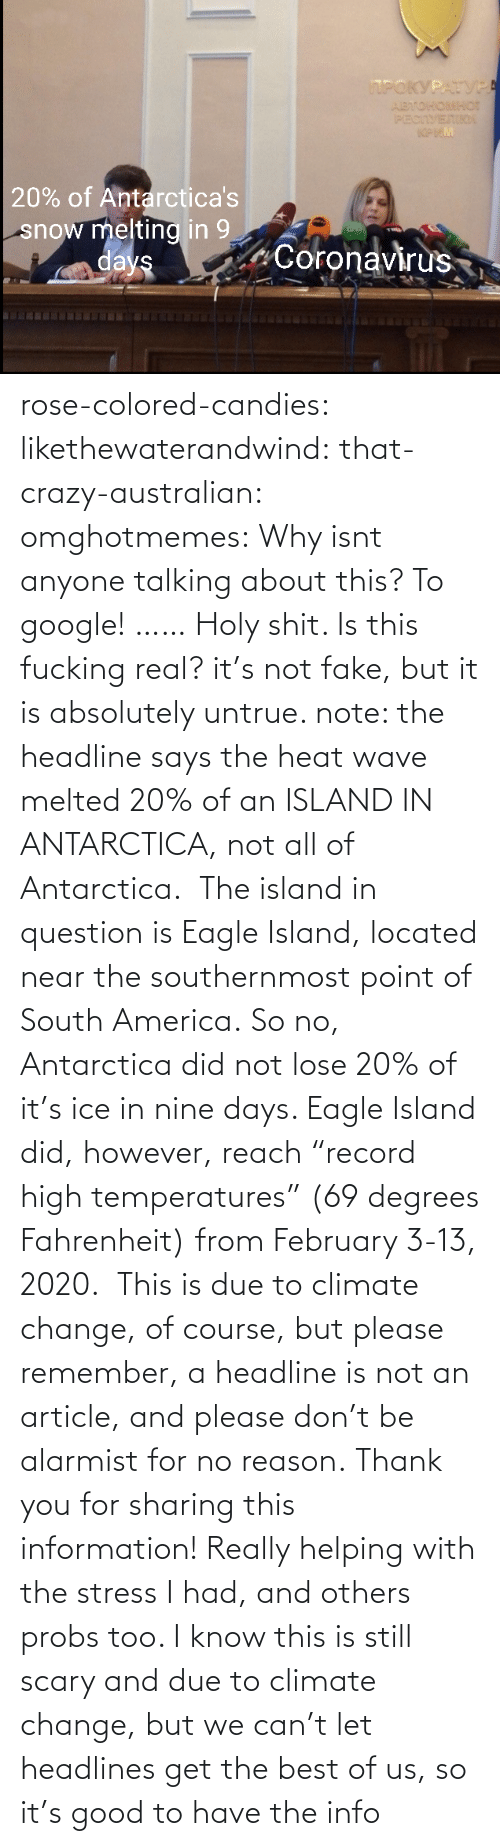 "point: rose-colored-candies: likethewaterandwind:   that-crazy-australian:  omghotmemes:  Why isnt anyone talking about this?   To google!  ……   Holy shit. Is this fucking real?   it's not fake, but it is absolutely untrue. note: the headline says the heat wave melted 20% of an ISLAND IN ANTARCTICA, not all of Antarctica.  The island in question is Eagle Island, located near the southernmost point of South America. So no, Antarctica did not lose 20% of it's ice in nine days. Eagle Island did, however, reach ""record high temperatures"" (69 degrees Fahrenheit) from February 3-13, 2020.  This is due to climate change, of course, but please remember, a headline is not an article, and please don't be alarmist for no reason.    Thank you for sharing this information! Really helping with the stress I had, and others probs too. I know this is still scary and due to climate change, but we can't let headlines get the best of us, so it's good to have the info"